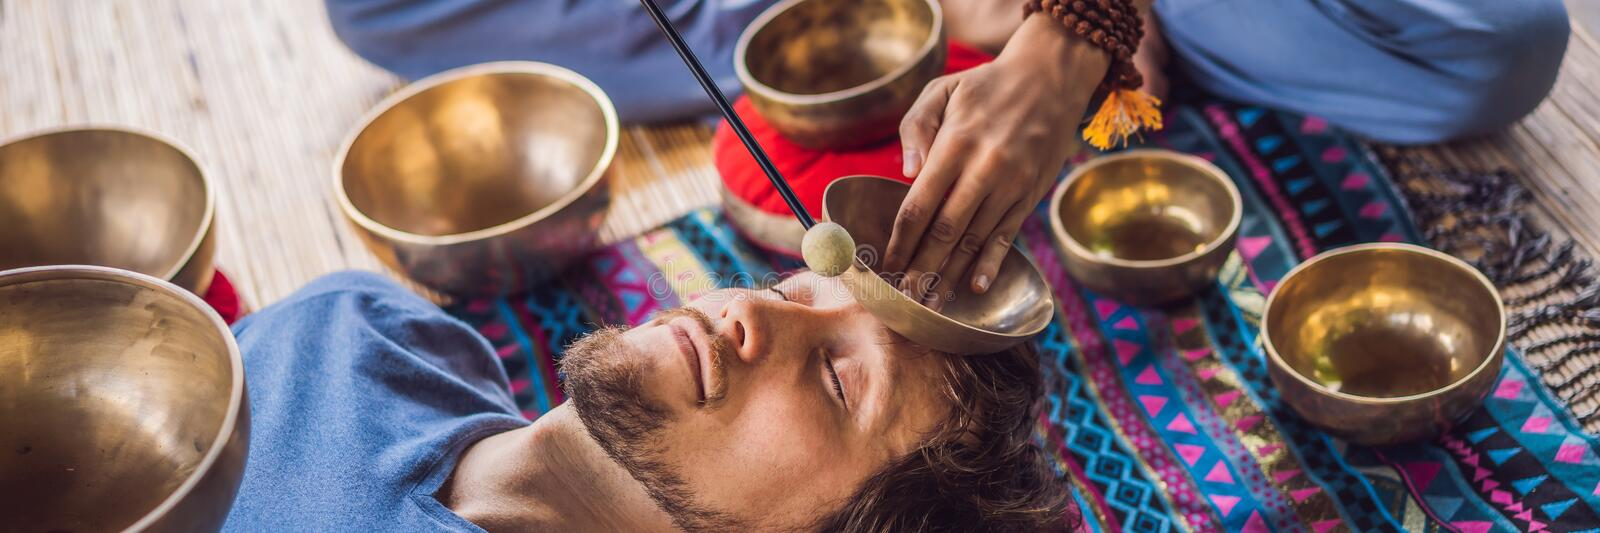 BANNER, LONG FORMAT Nepal Buddha copper singing bowl at spa salon. Young beautiful man doing massage therapy singing. BANNER, LONG FORMAT Nepal Buddha copper stock images